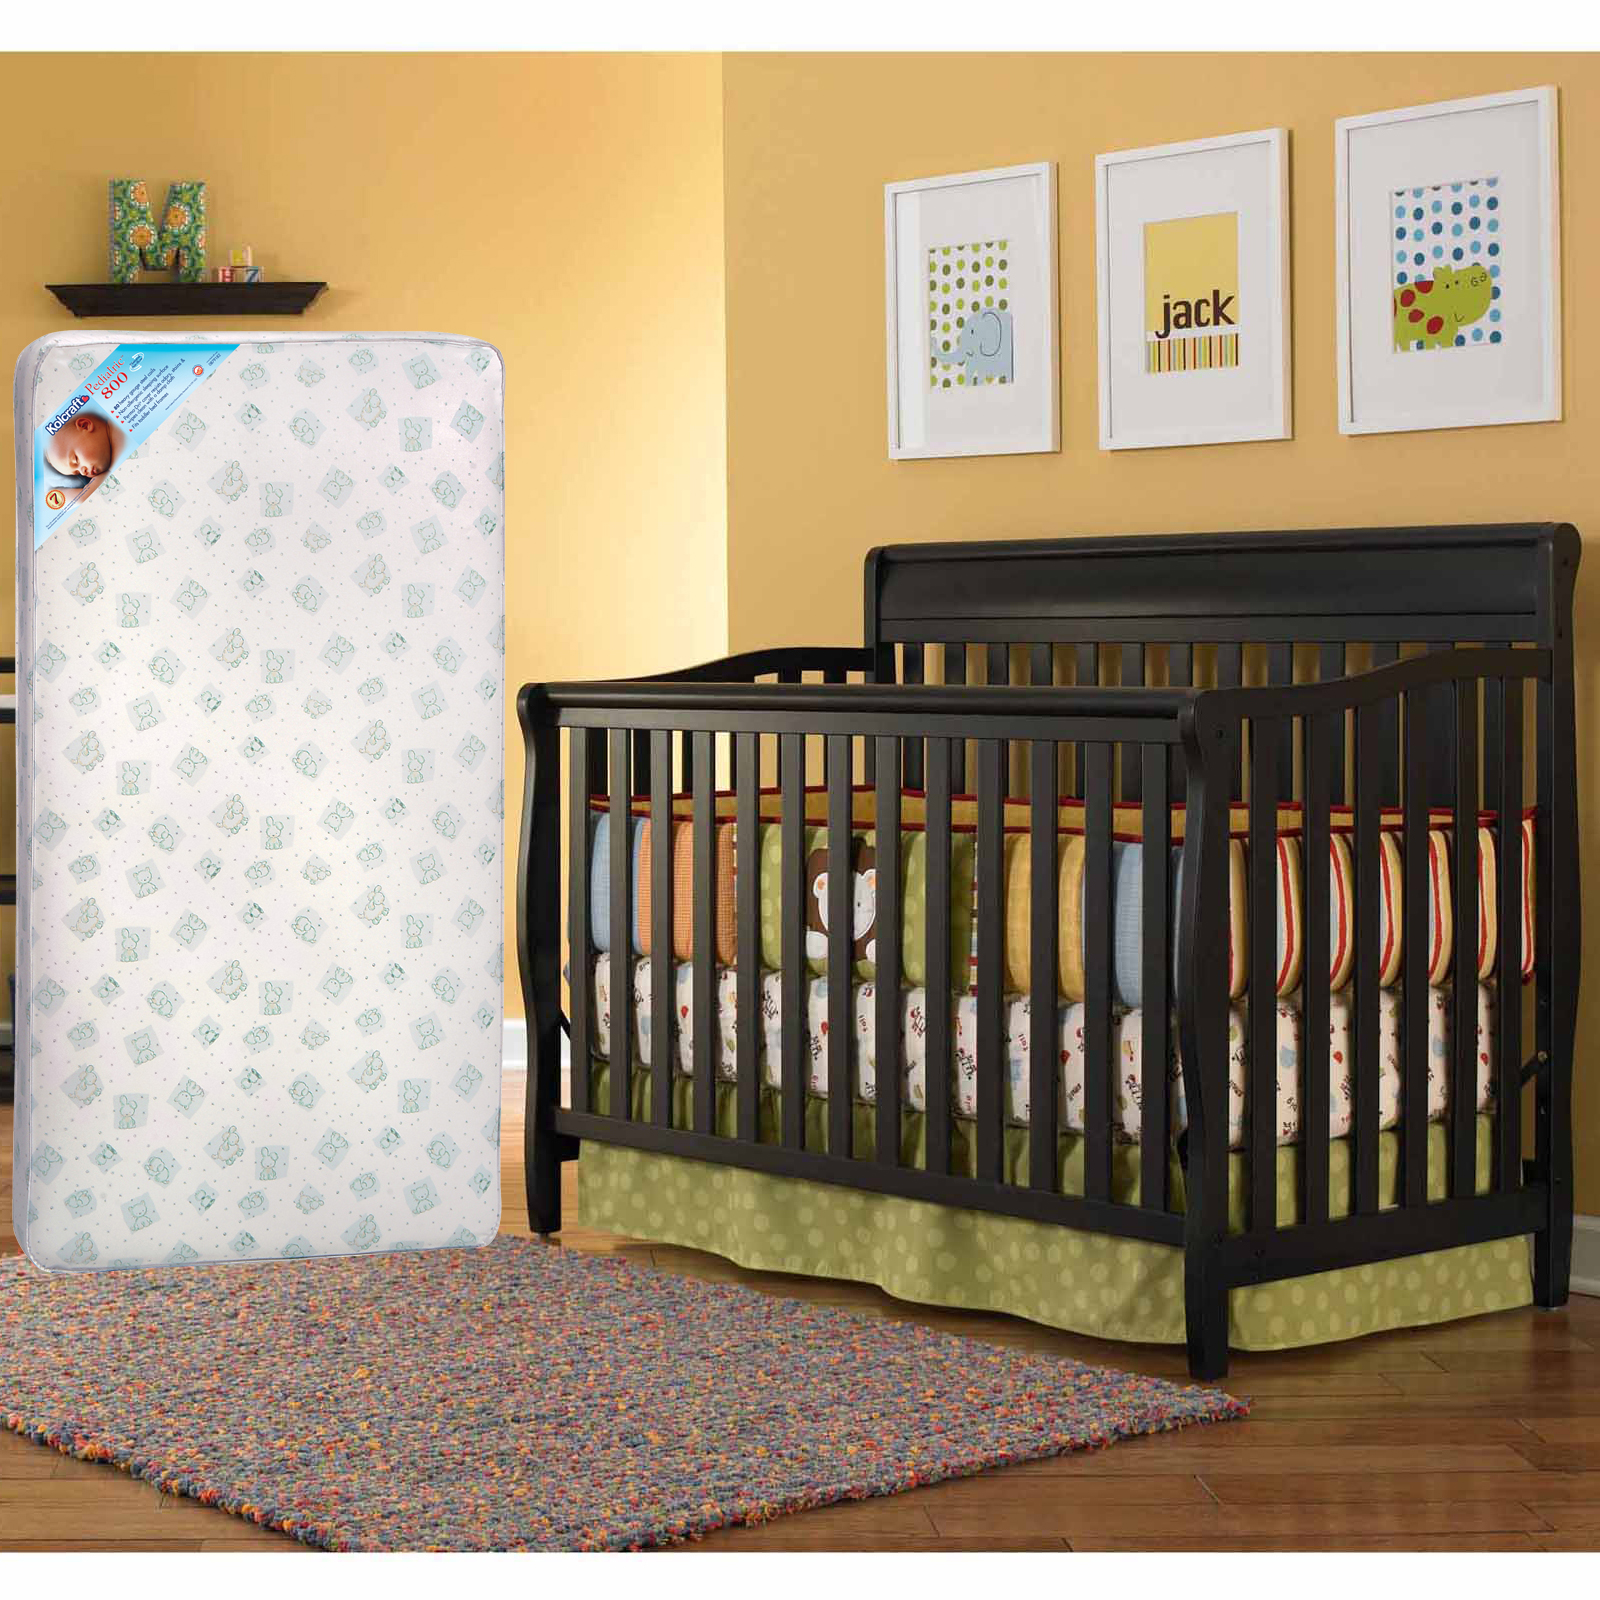 Graco Stanton 4 in 1 Convertible Crib and BONUS Kolcraft Mattress Bundle